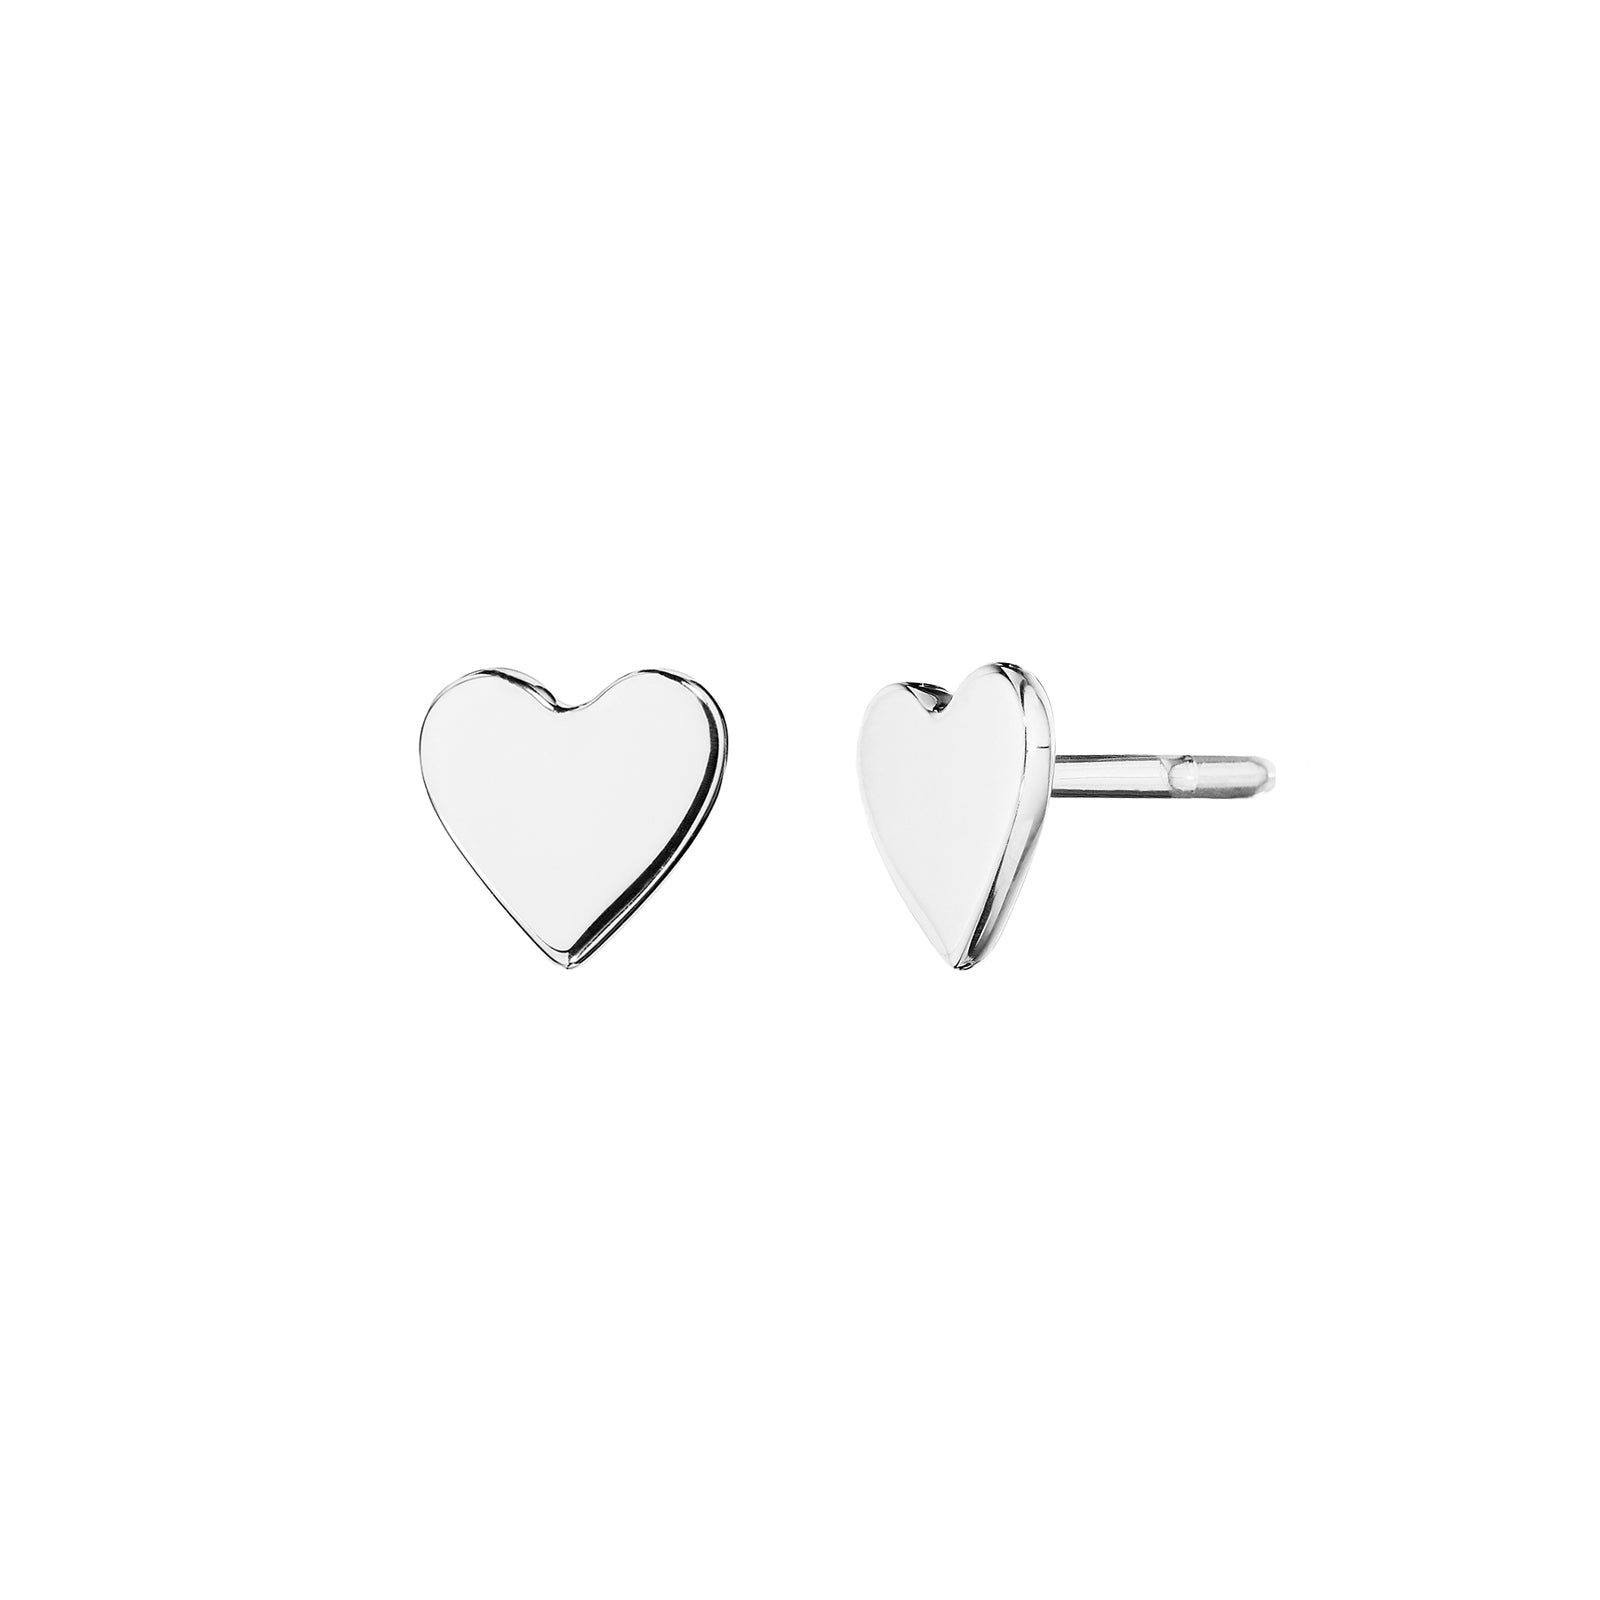 Cadar Wings of Love Small Heart Studs - White Gold - Earrings - Broken English Jewelry